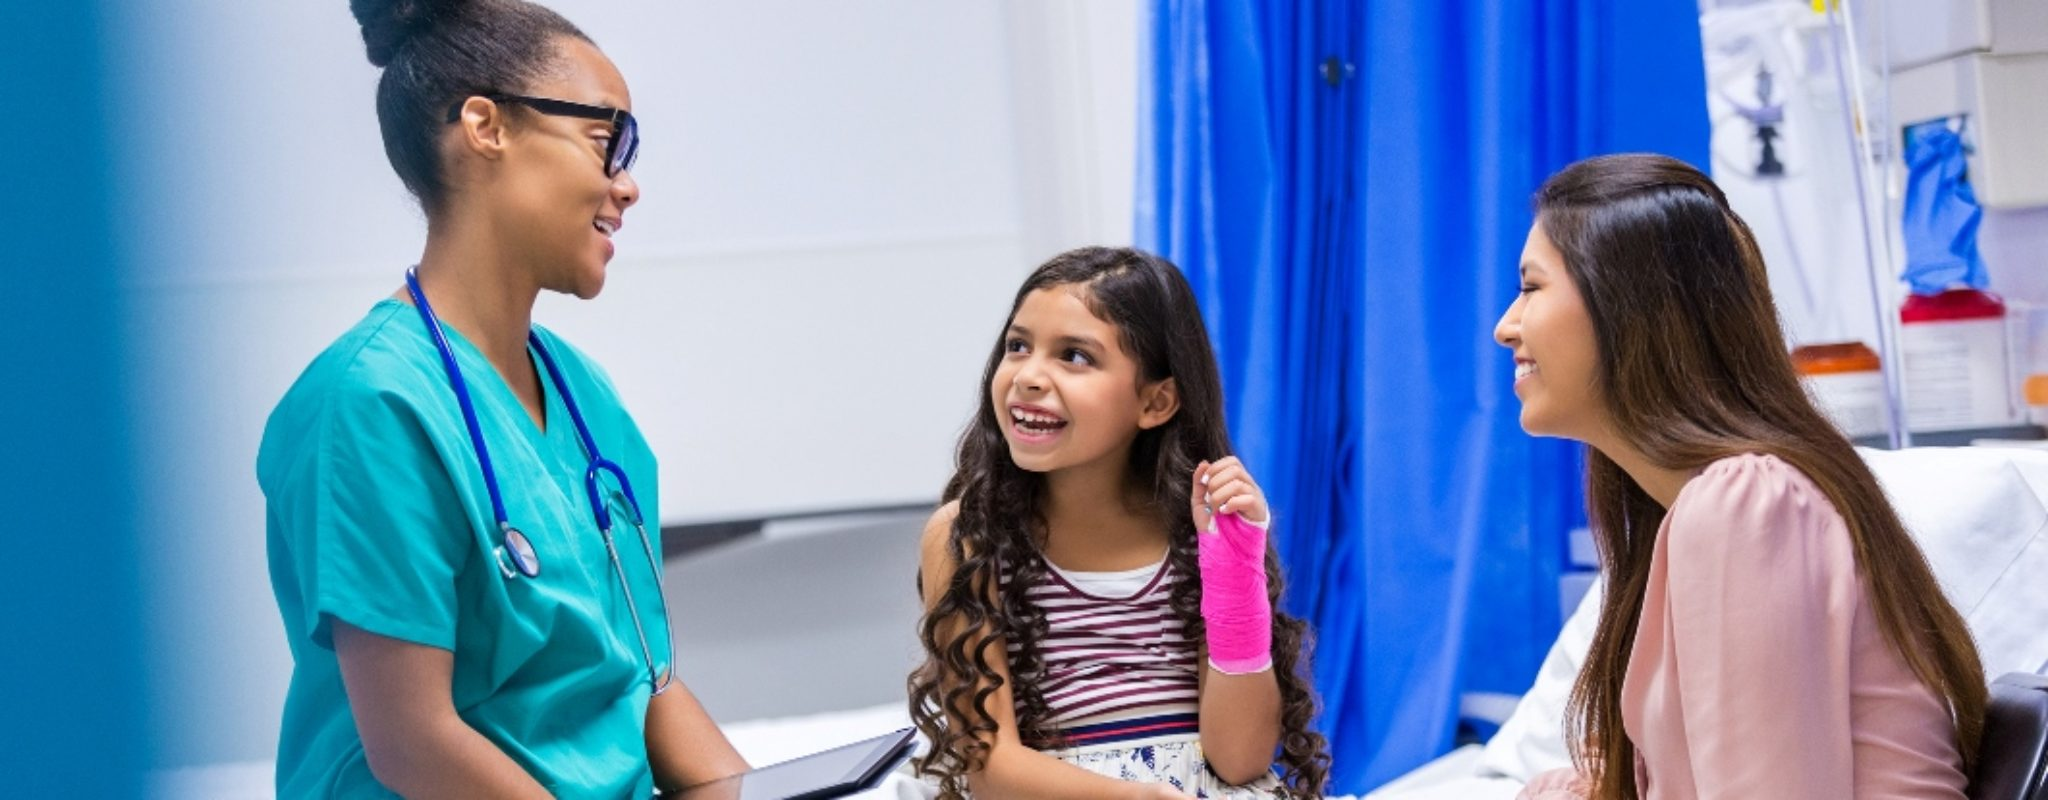 Is It an Emergency or Just Urgent? by Kate Cronan, MD | Promise, Powered by Nemours Children's Health System